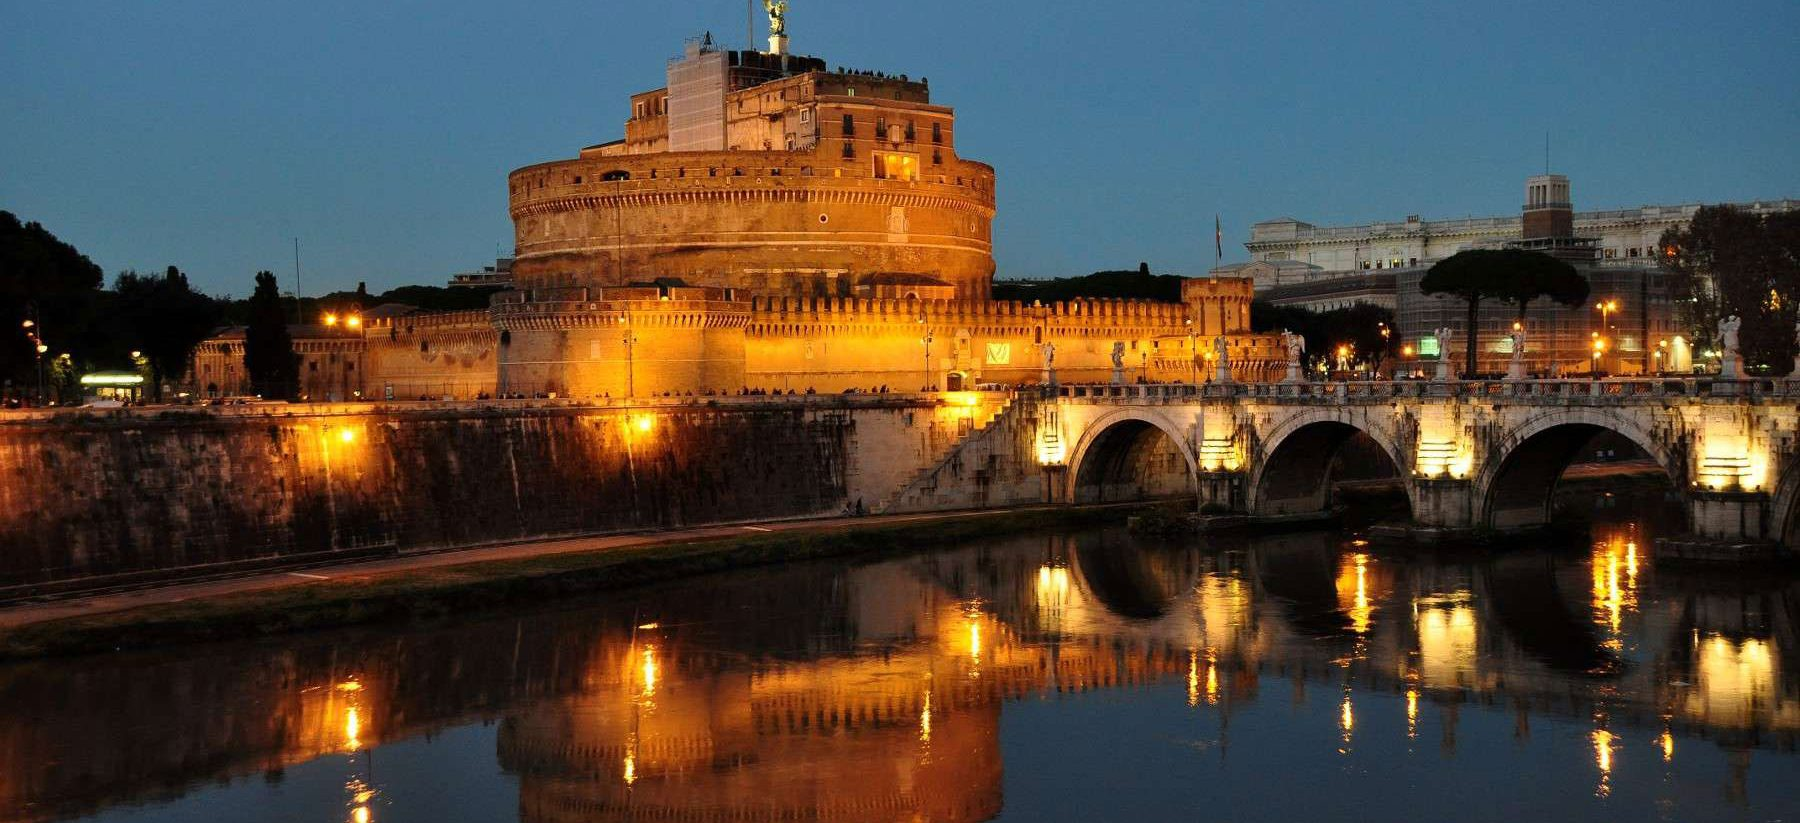 BDB Luxury Rooms Navona Cielo | Luxury room in Rome close to Castel Sant'Angelo